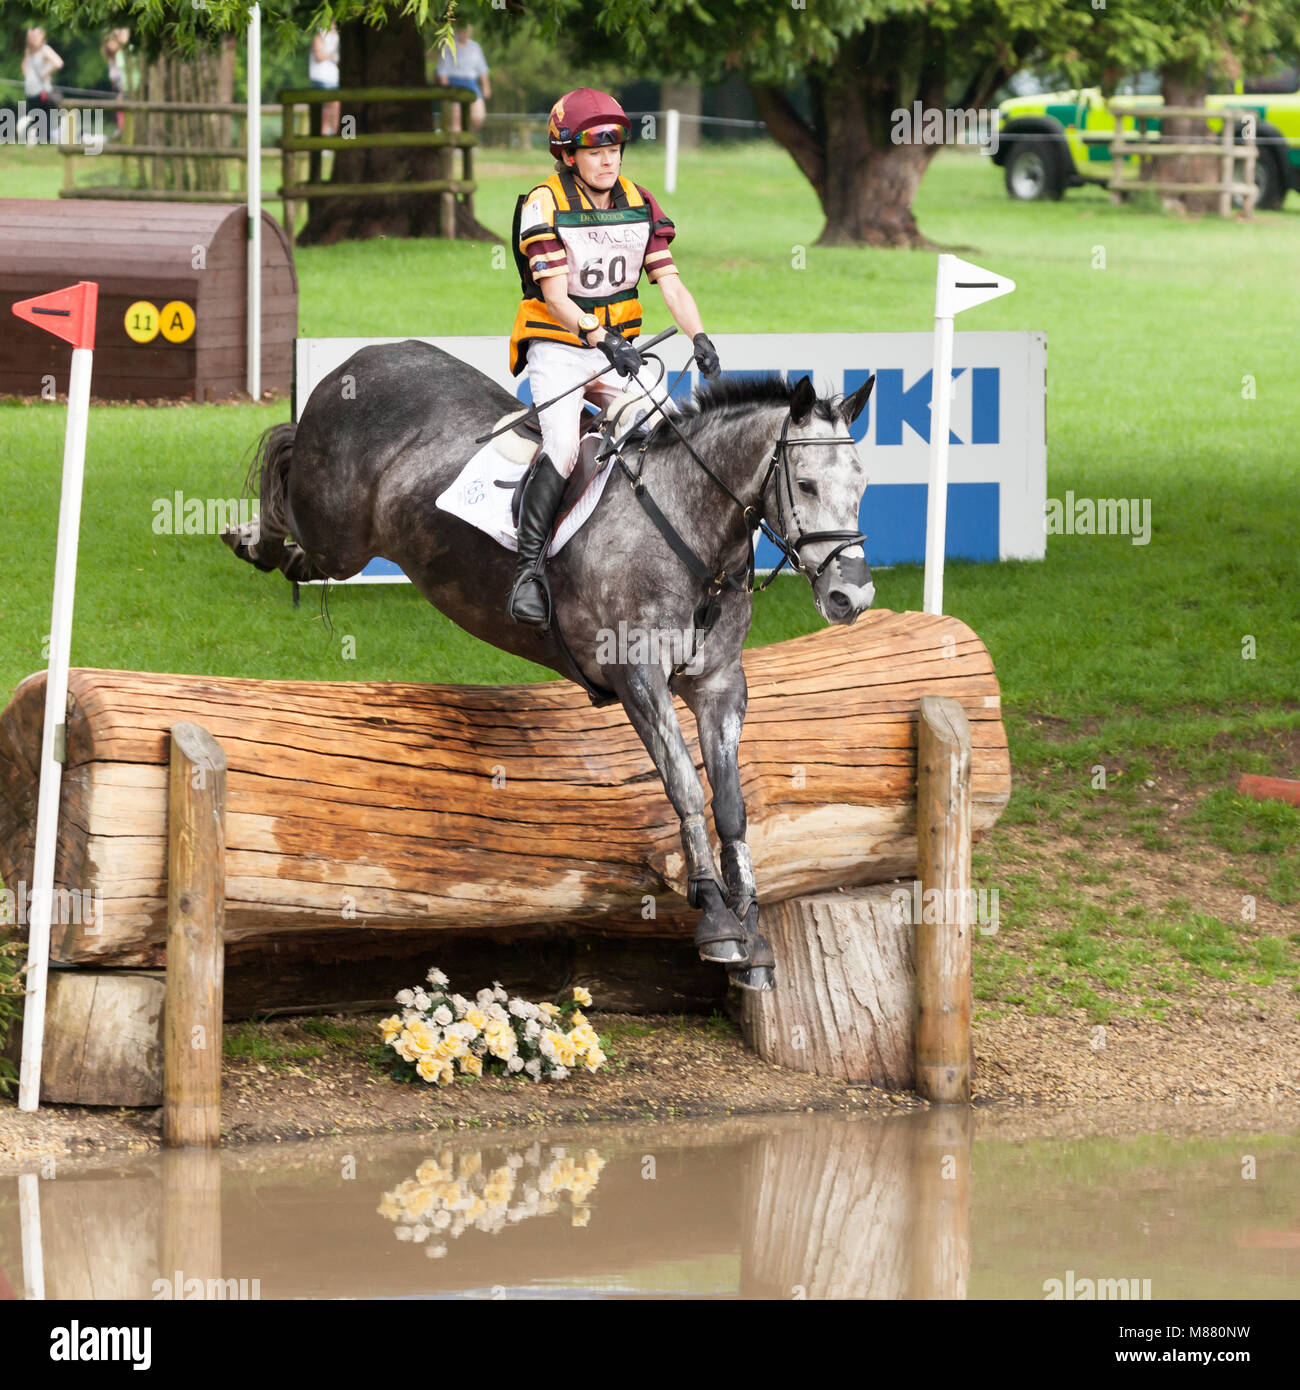 HOUGHTON, NORFOLK/ENGLAND - May 27th 2017: Houghton International Horse Trials 2017 Annie Bellamy riding Grafik - Stock Image